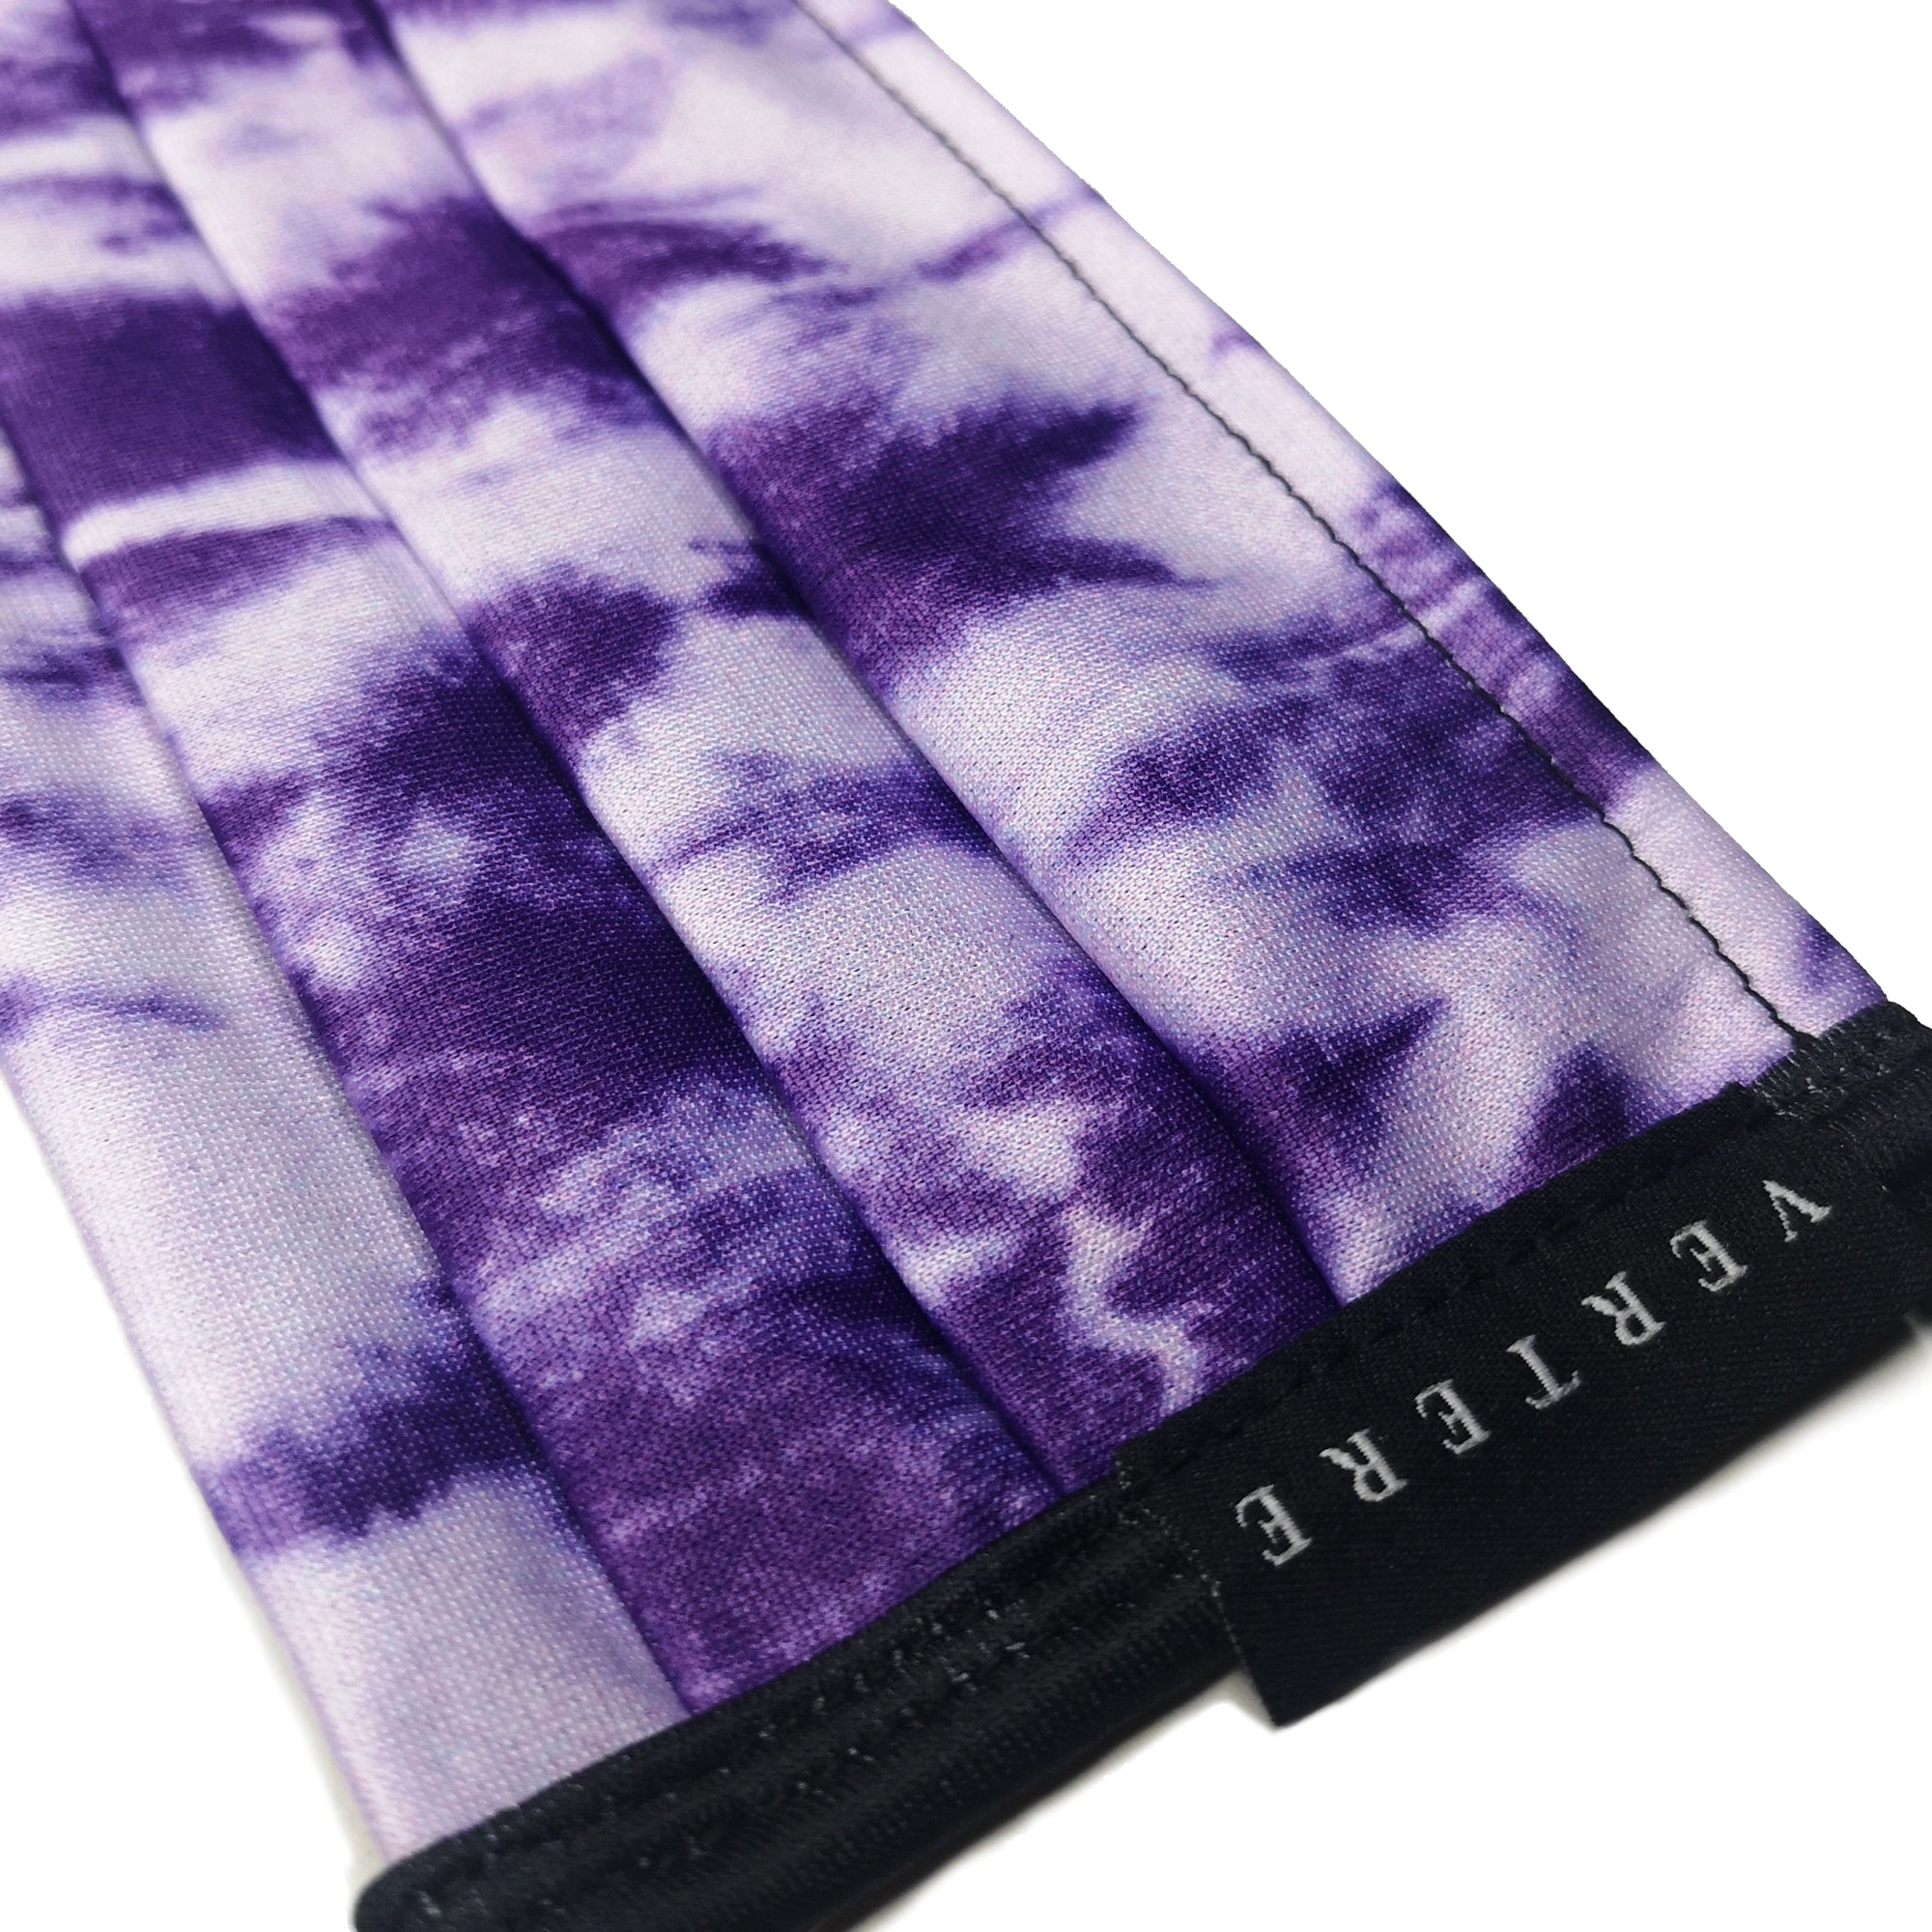 TIE DYE FACE MASK WITH NECKBAND - PURPLE